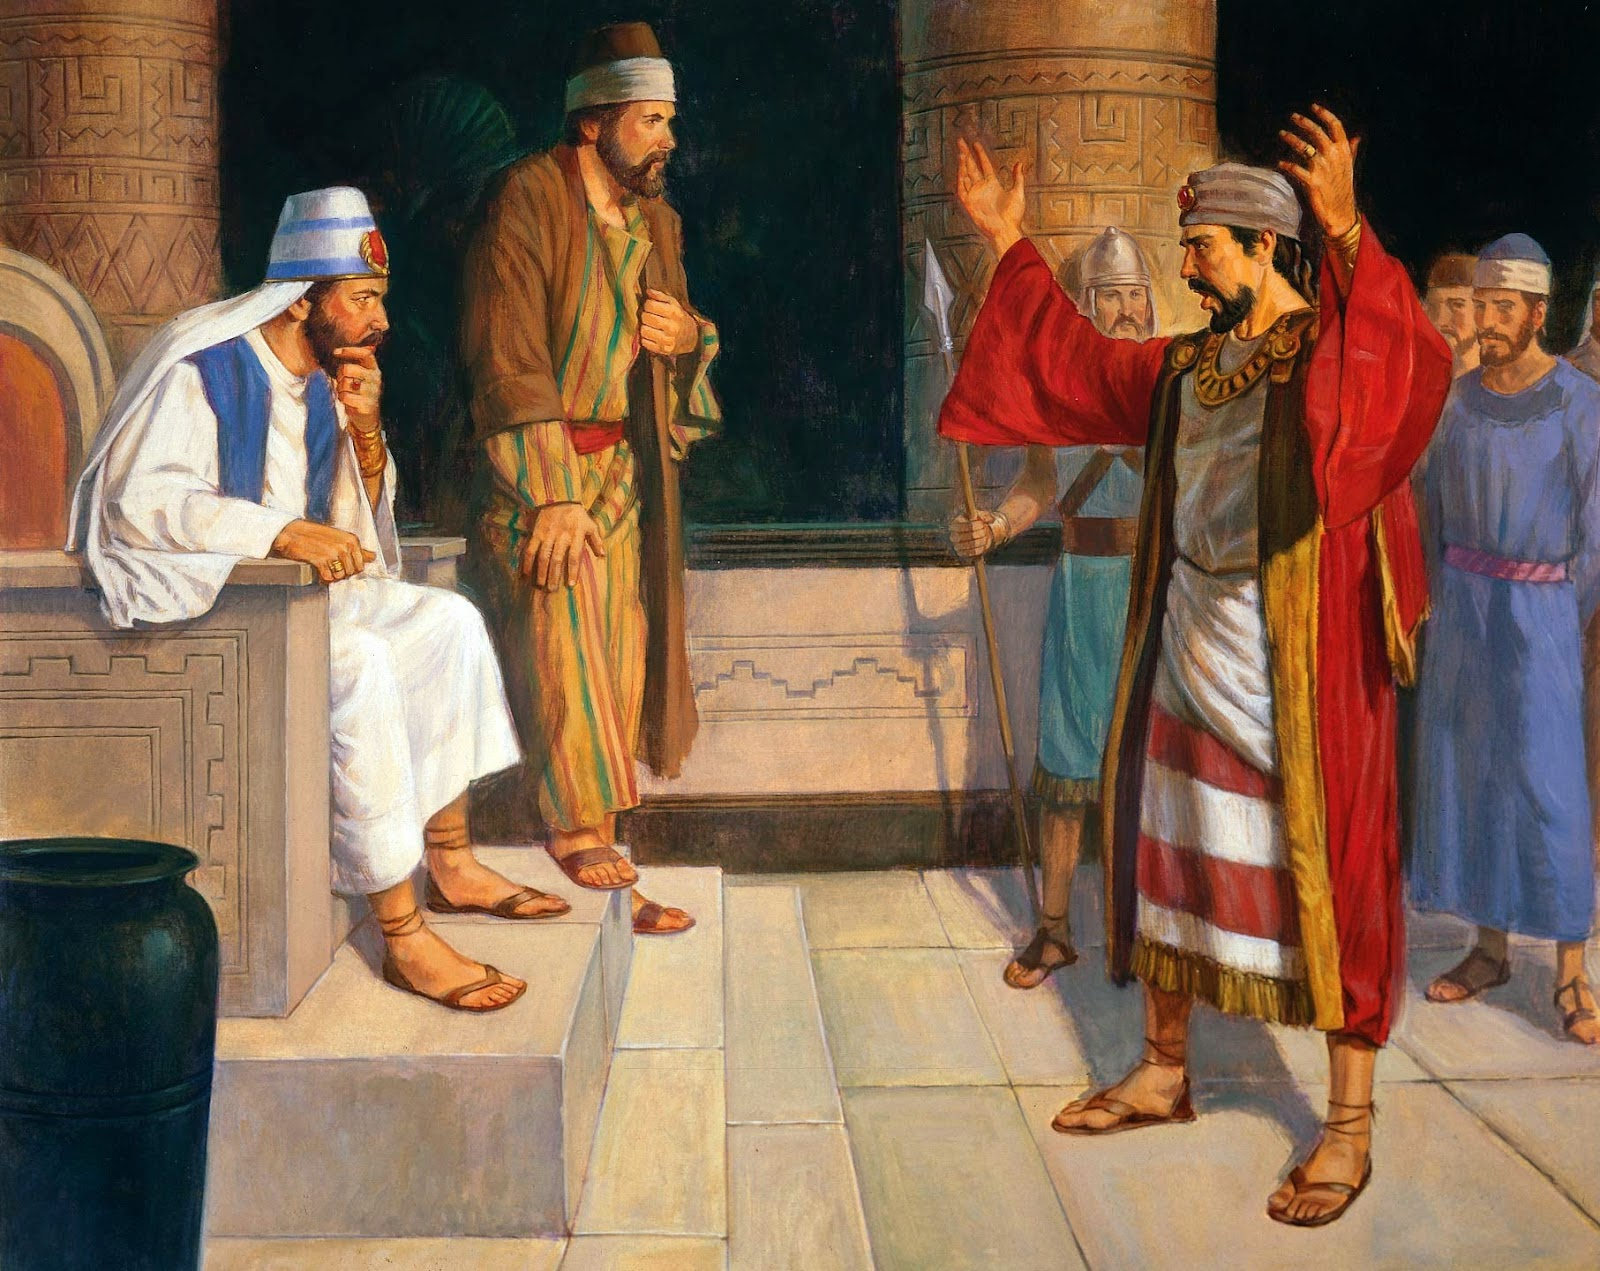 About Korihor and the real lesson …